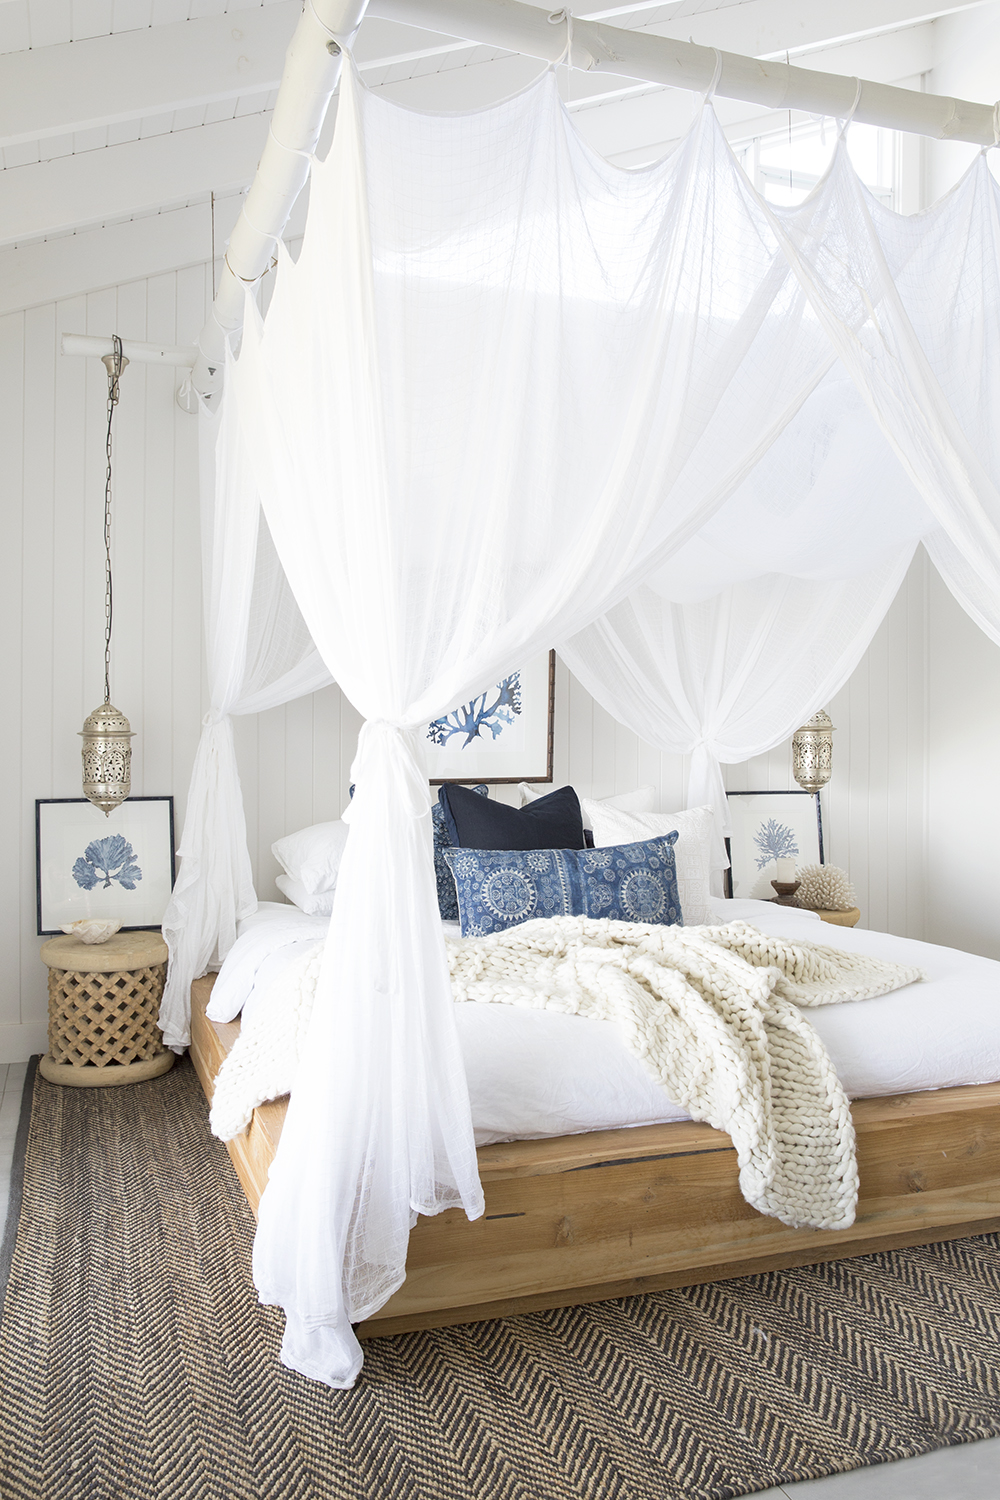 Get the Look: A Beachy Moroccan Themed Bedroom — Styling By Homies